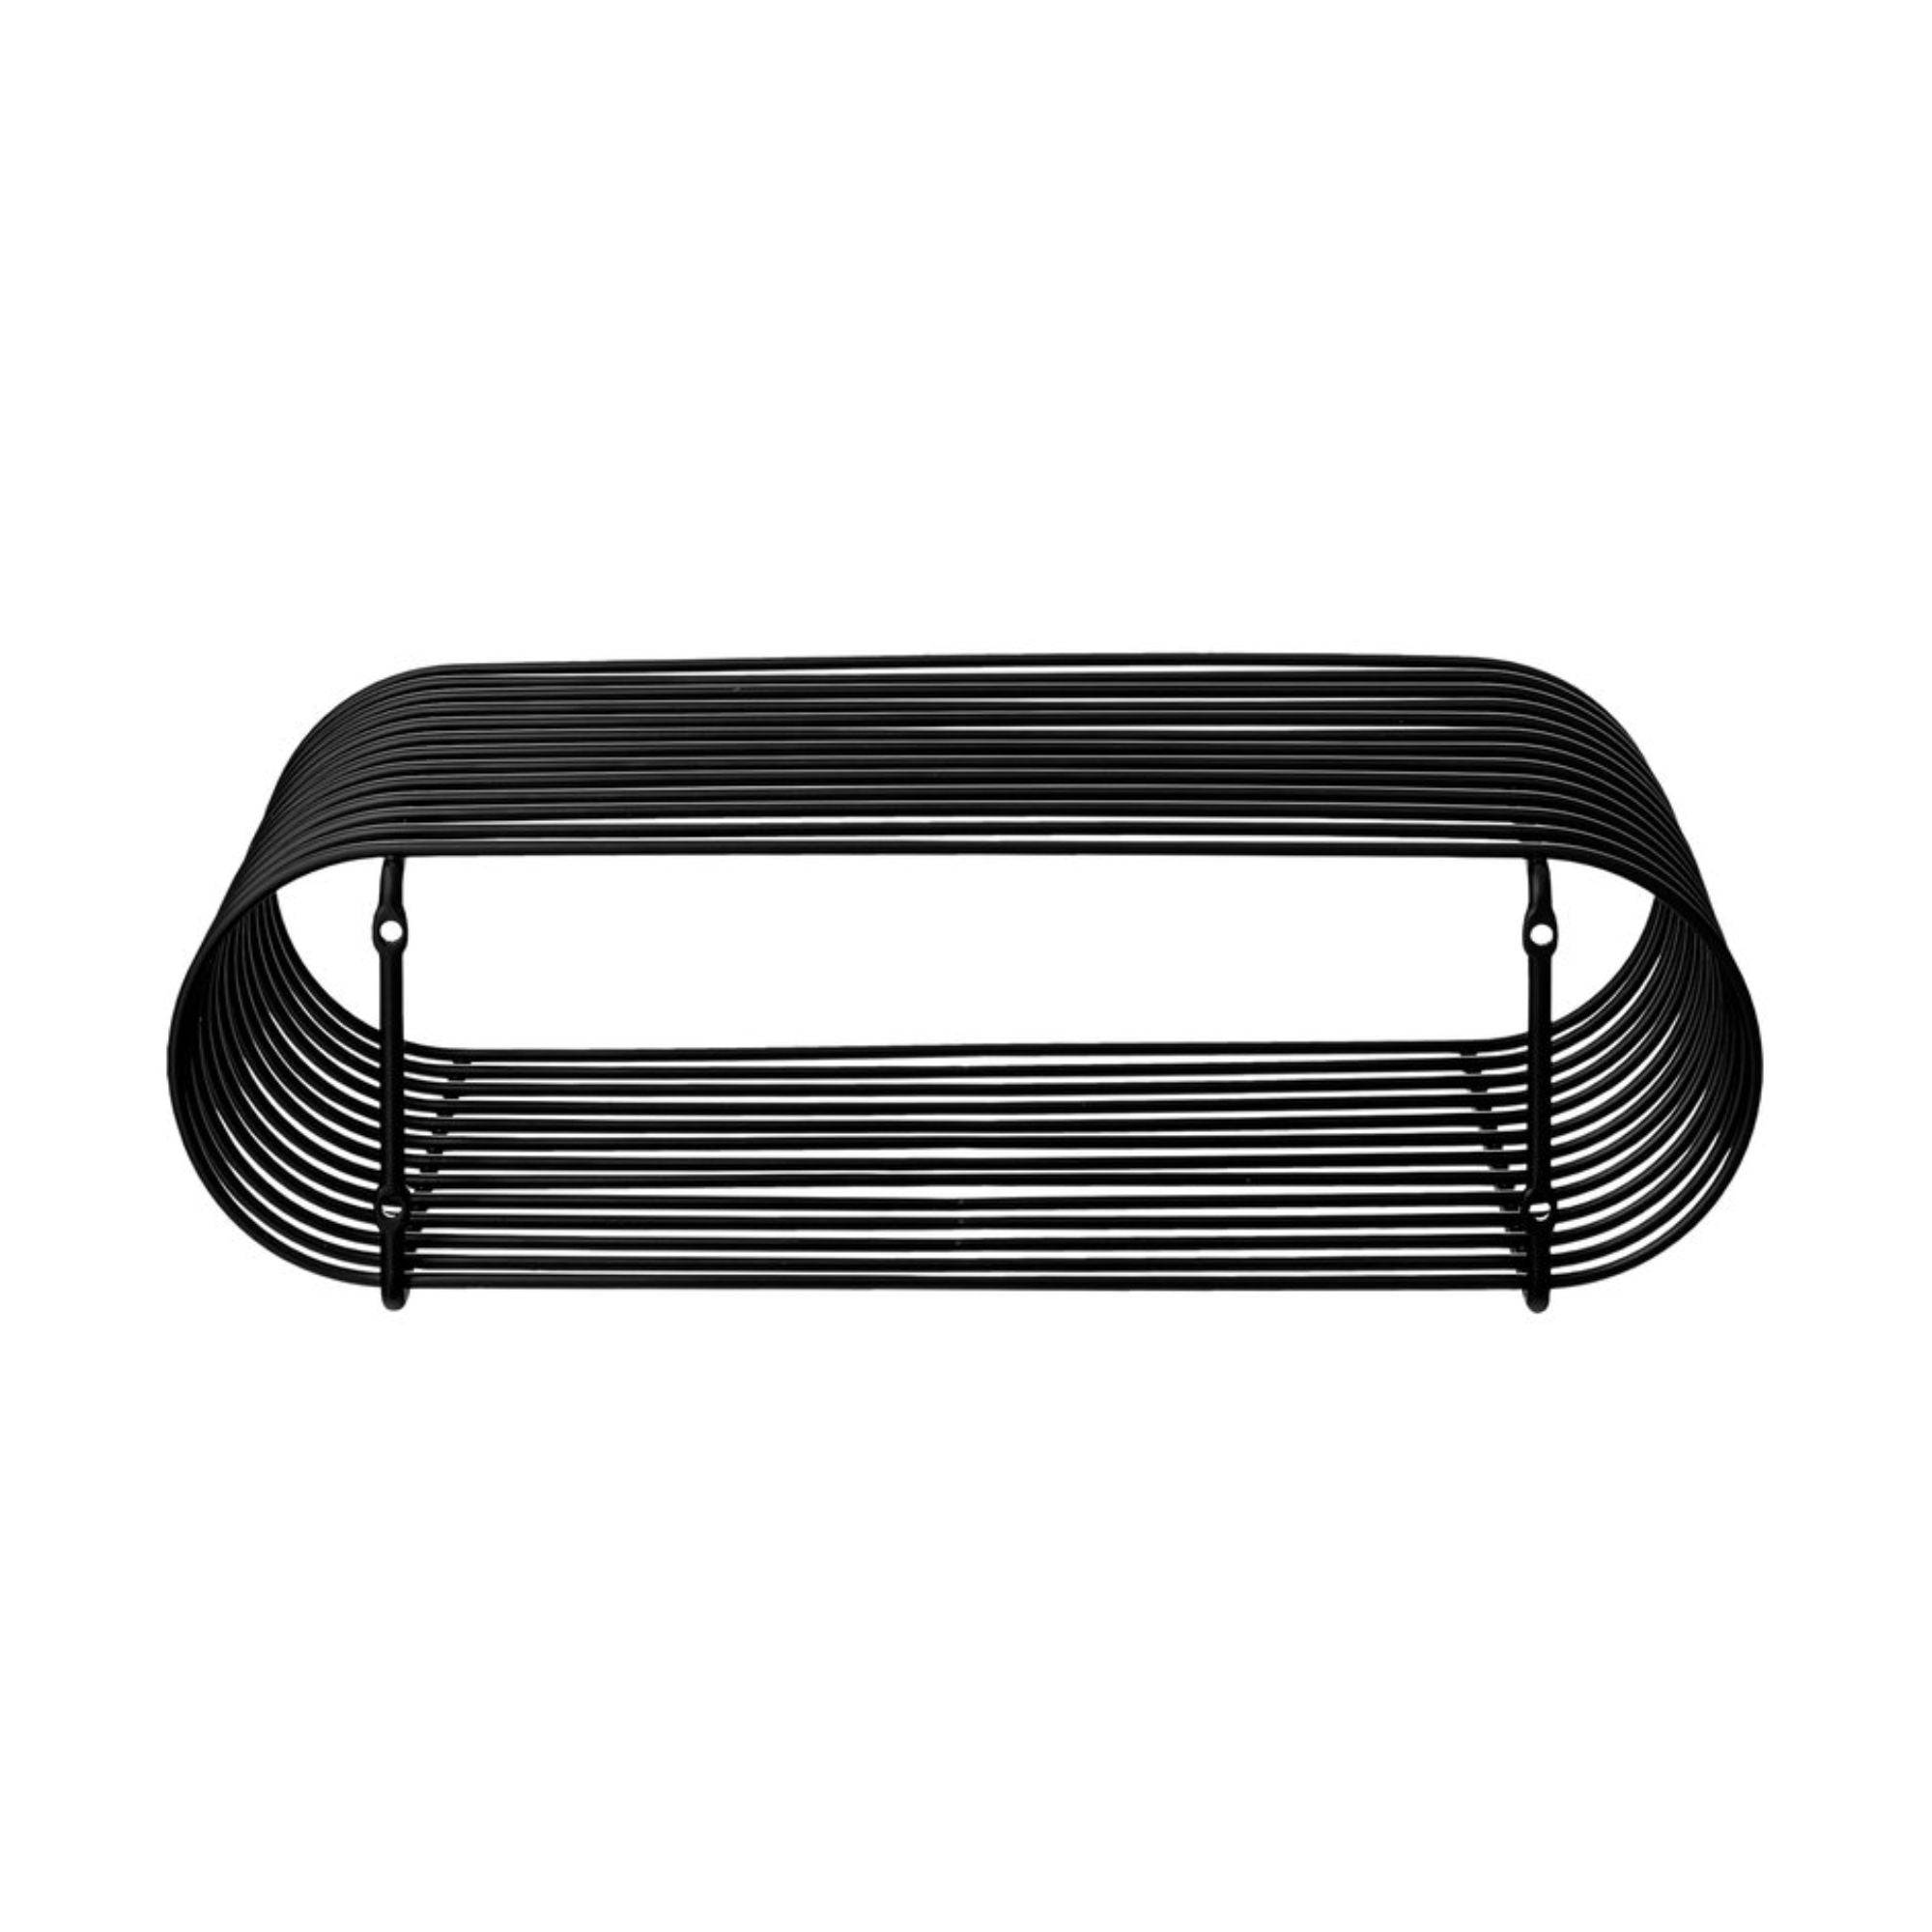 AYTM Curva Shelf , Black